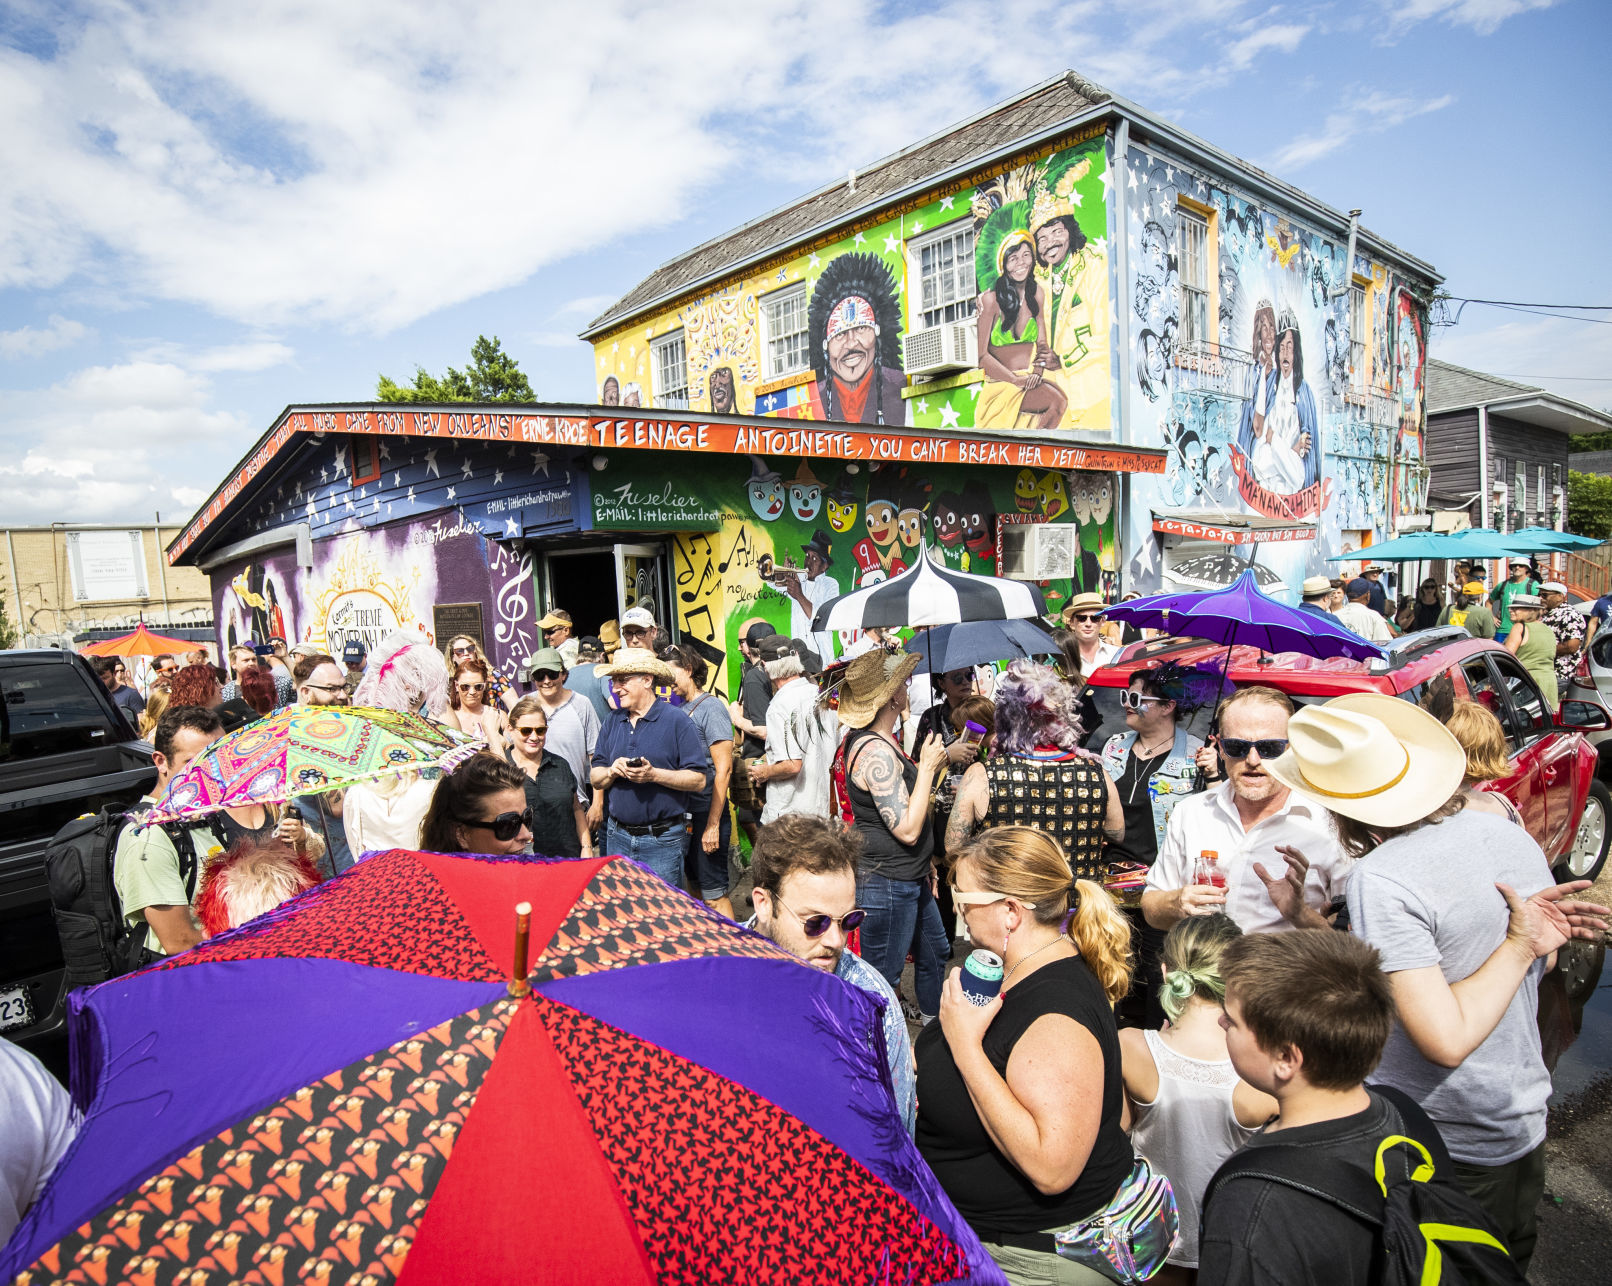 Marching for Mac Rebennack: New Orleans music icon Dr. John gets celebratory second-line